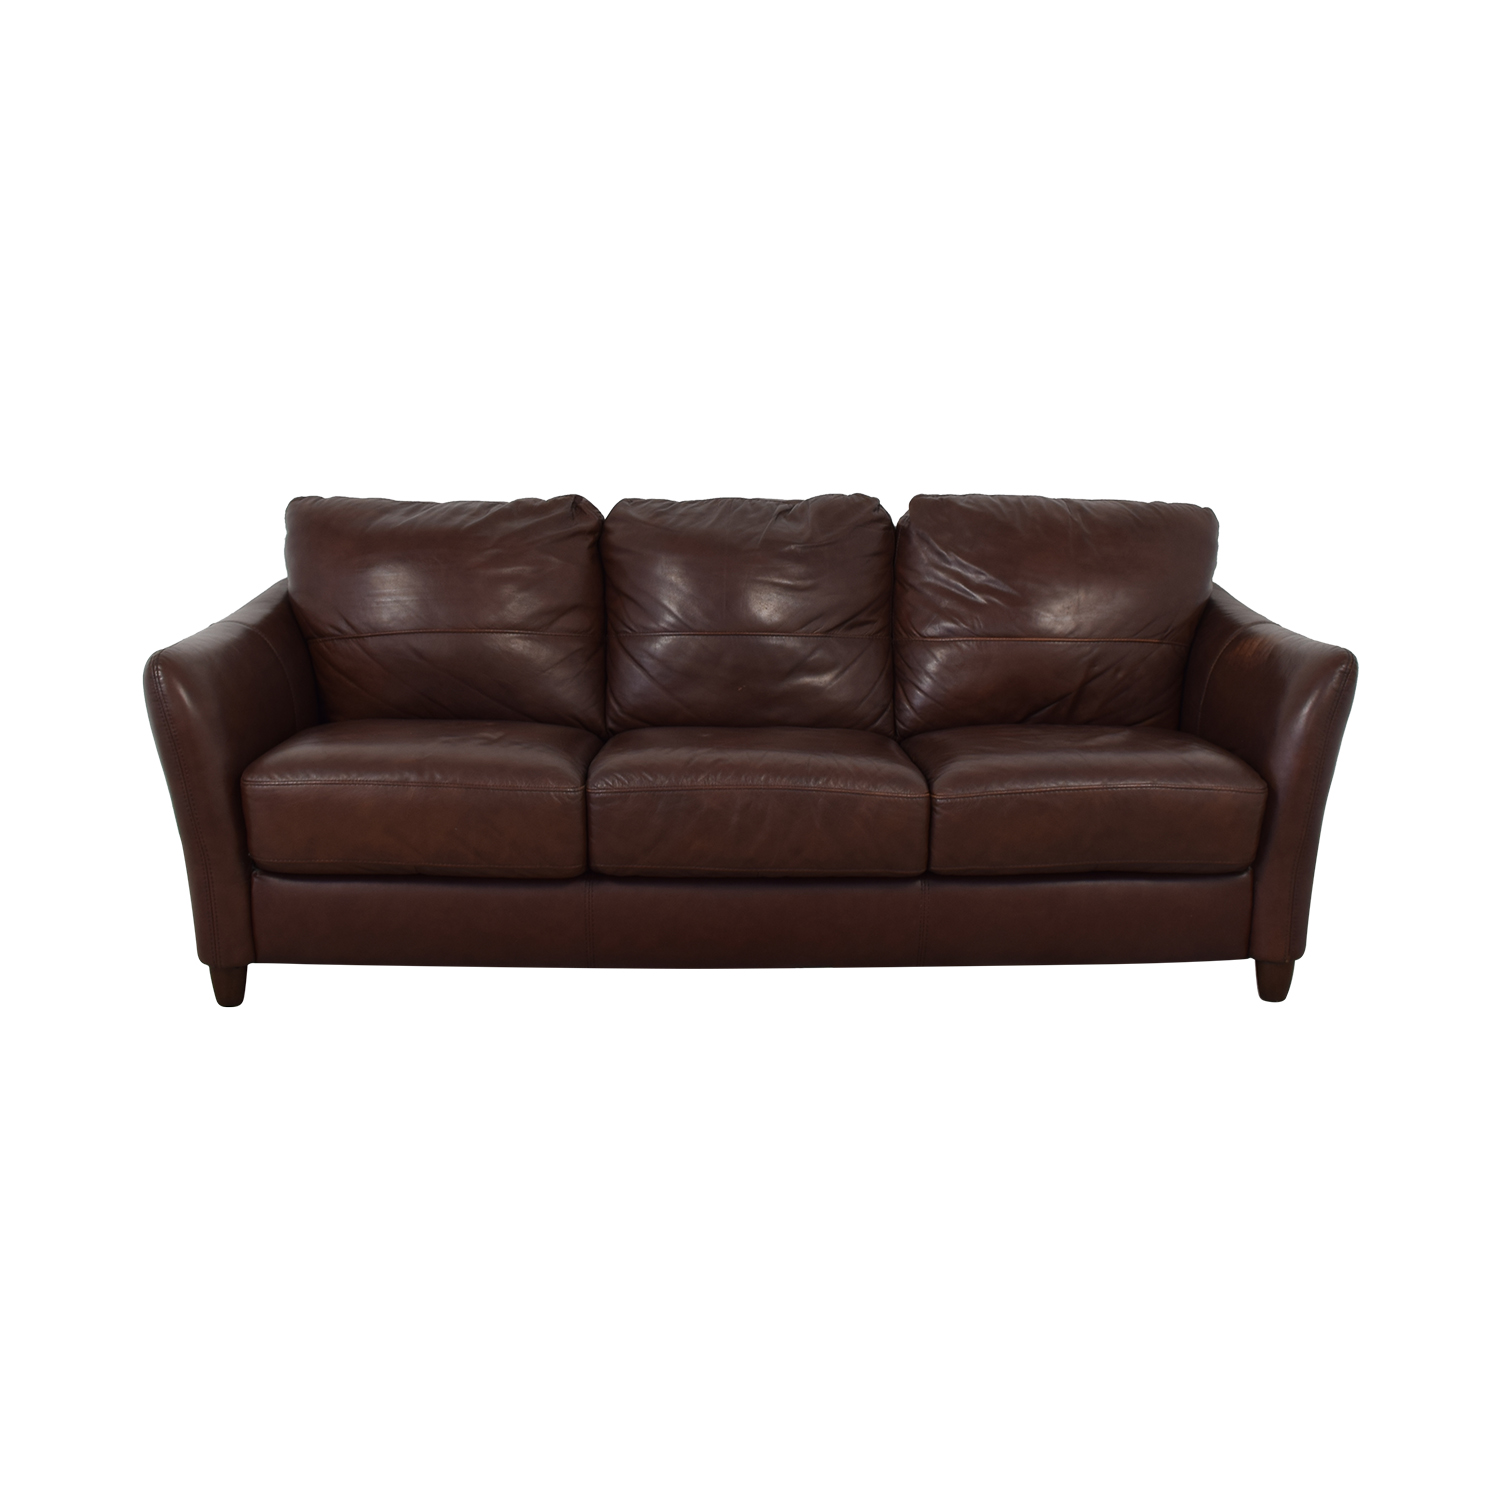 71% OFF - Raymour & Flanigan Raymour & Flanigan Leather Sofa / Sofas